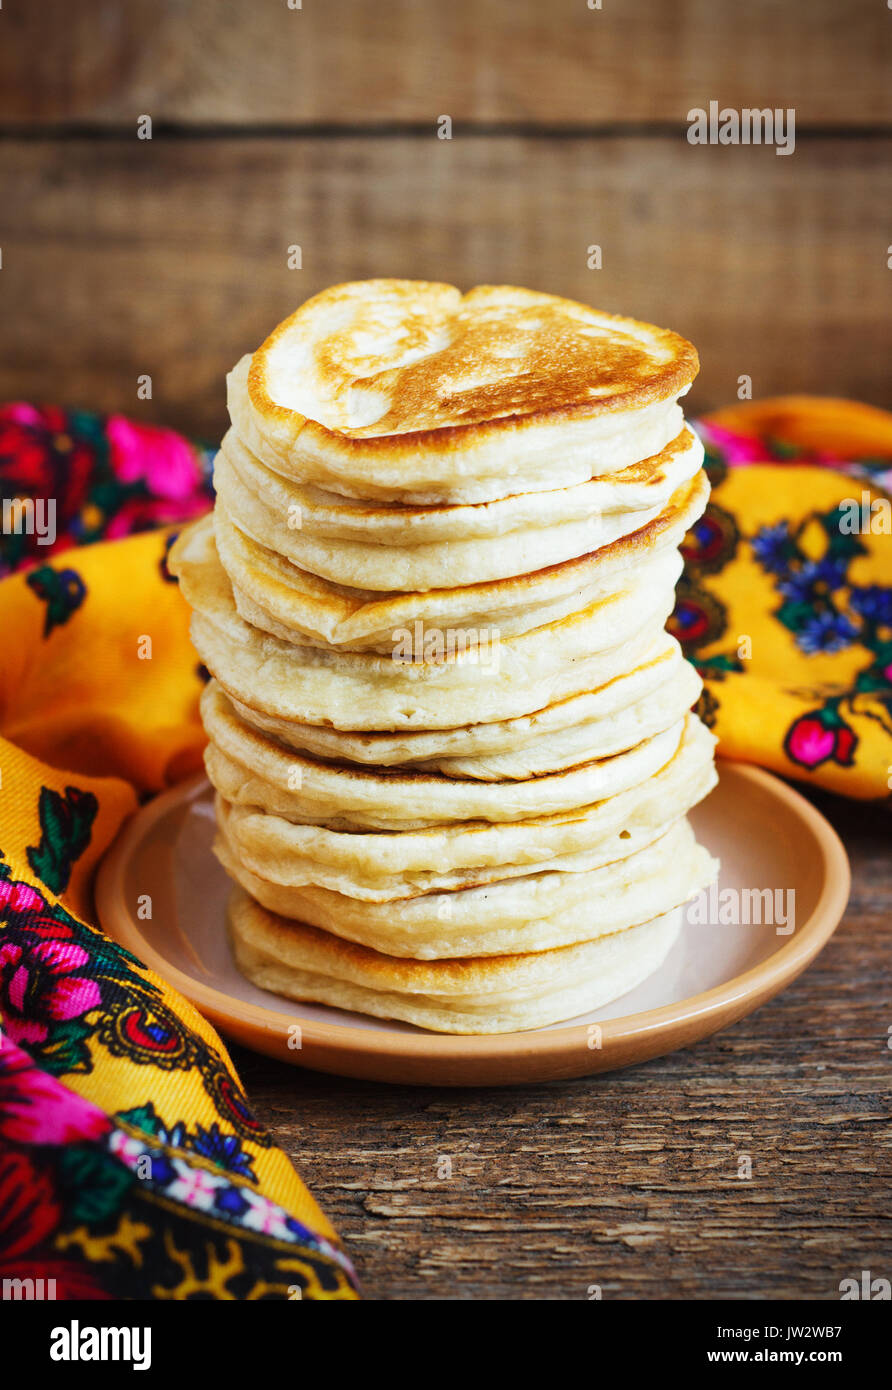 Staple of yeast pancakes, traditional for Russian pancake week rustic - Stock Image